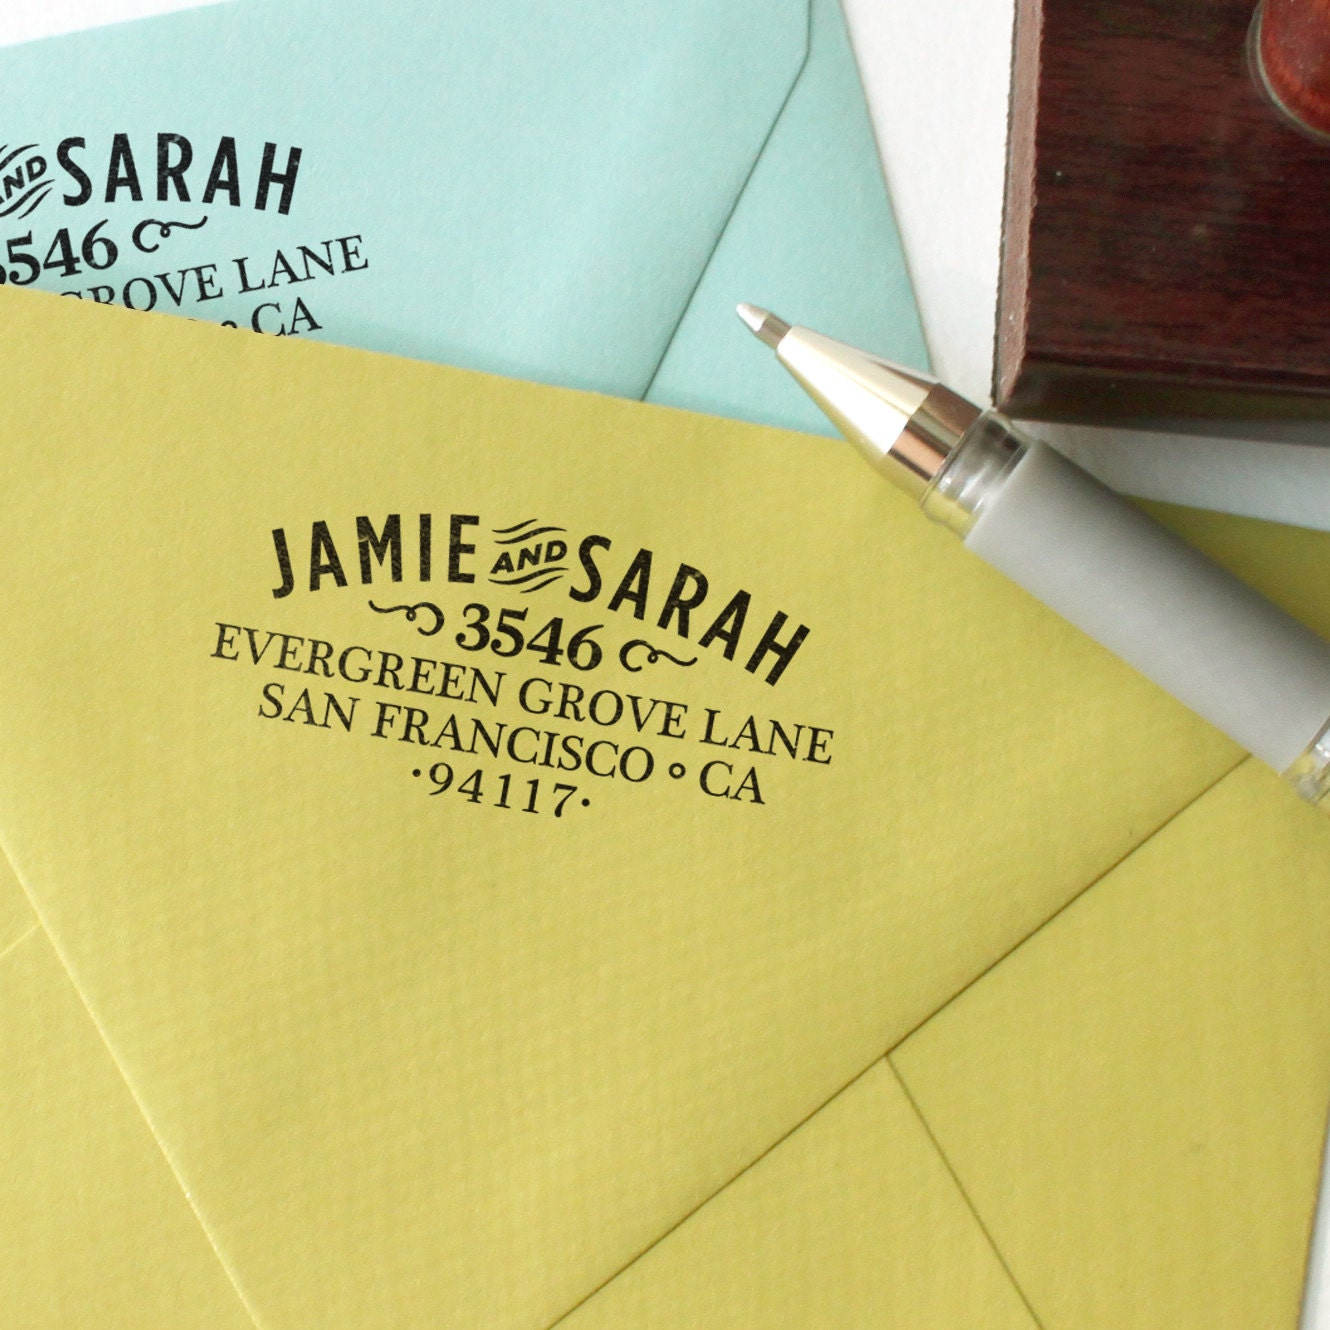 How To Address Wedding Invitations Without Inner Envelope was beautiful invitations design